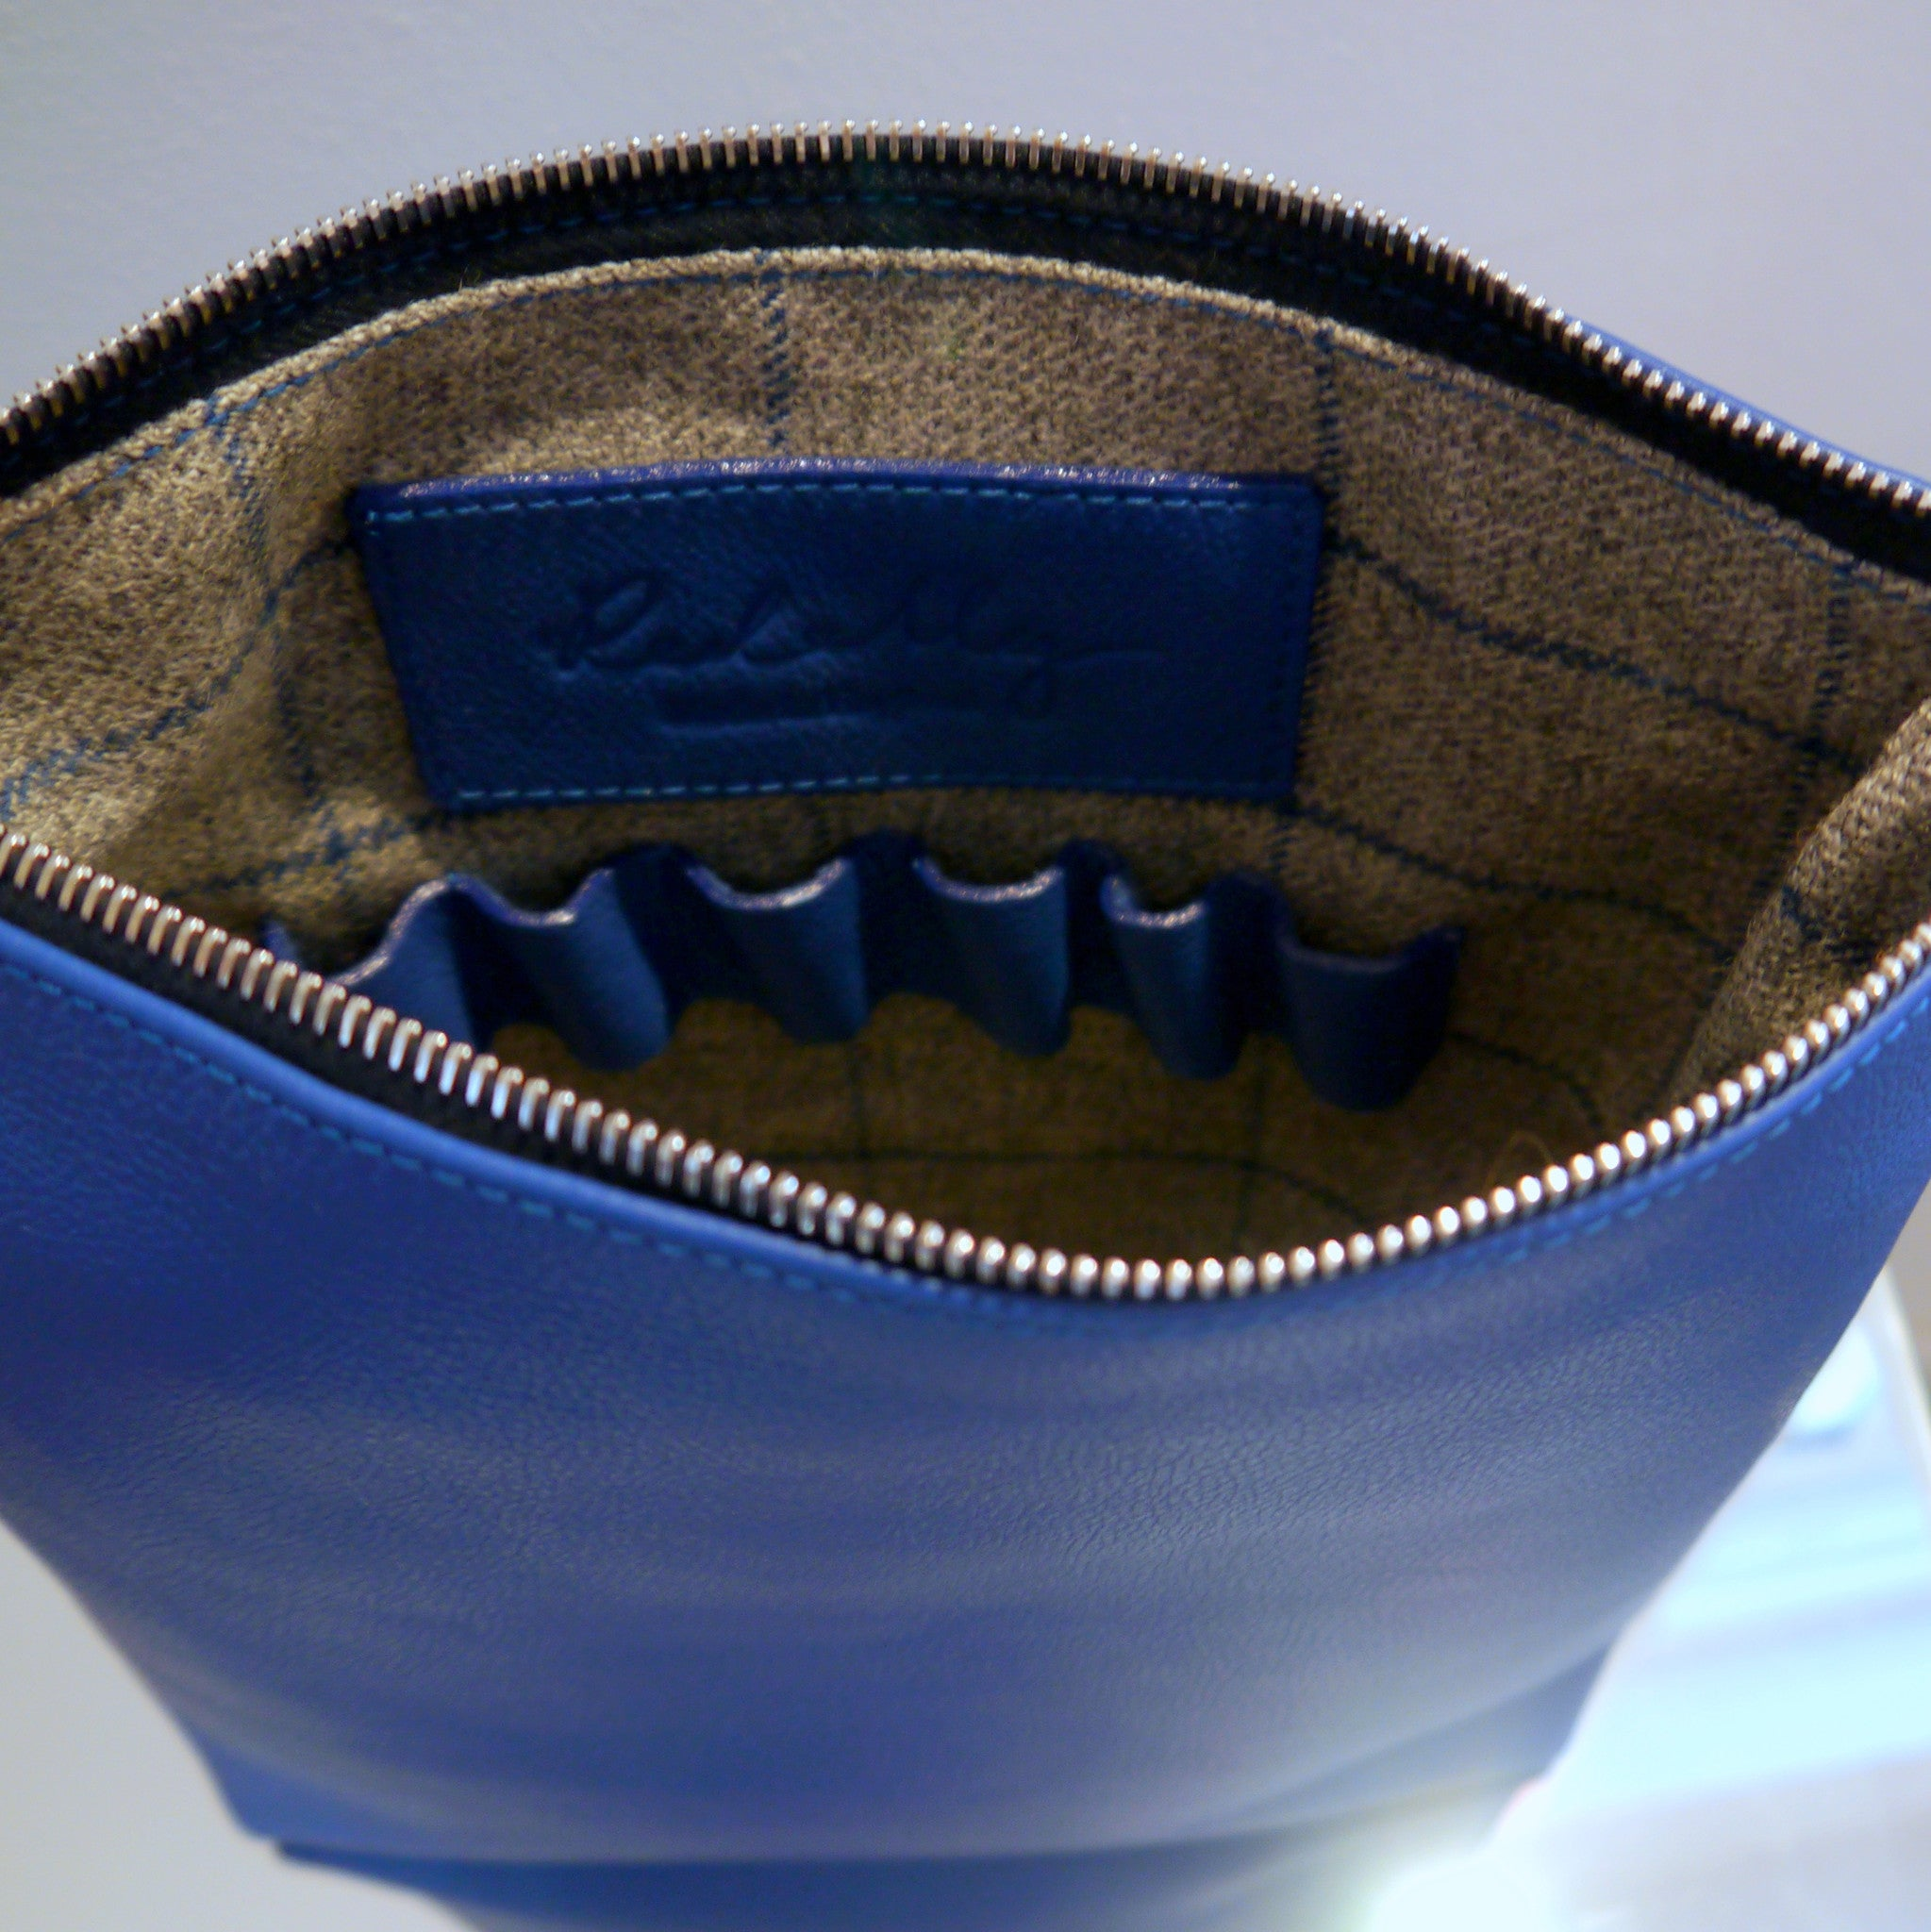 S/S 15 Poppy Leather Make Up Bag in royal blue - Large